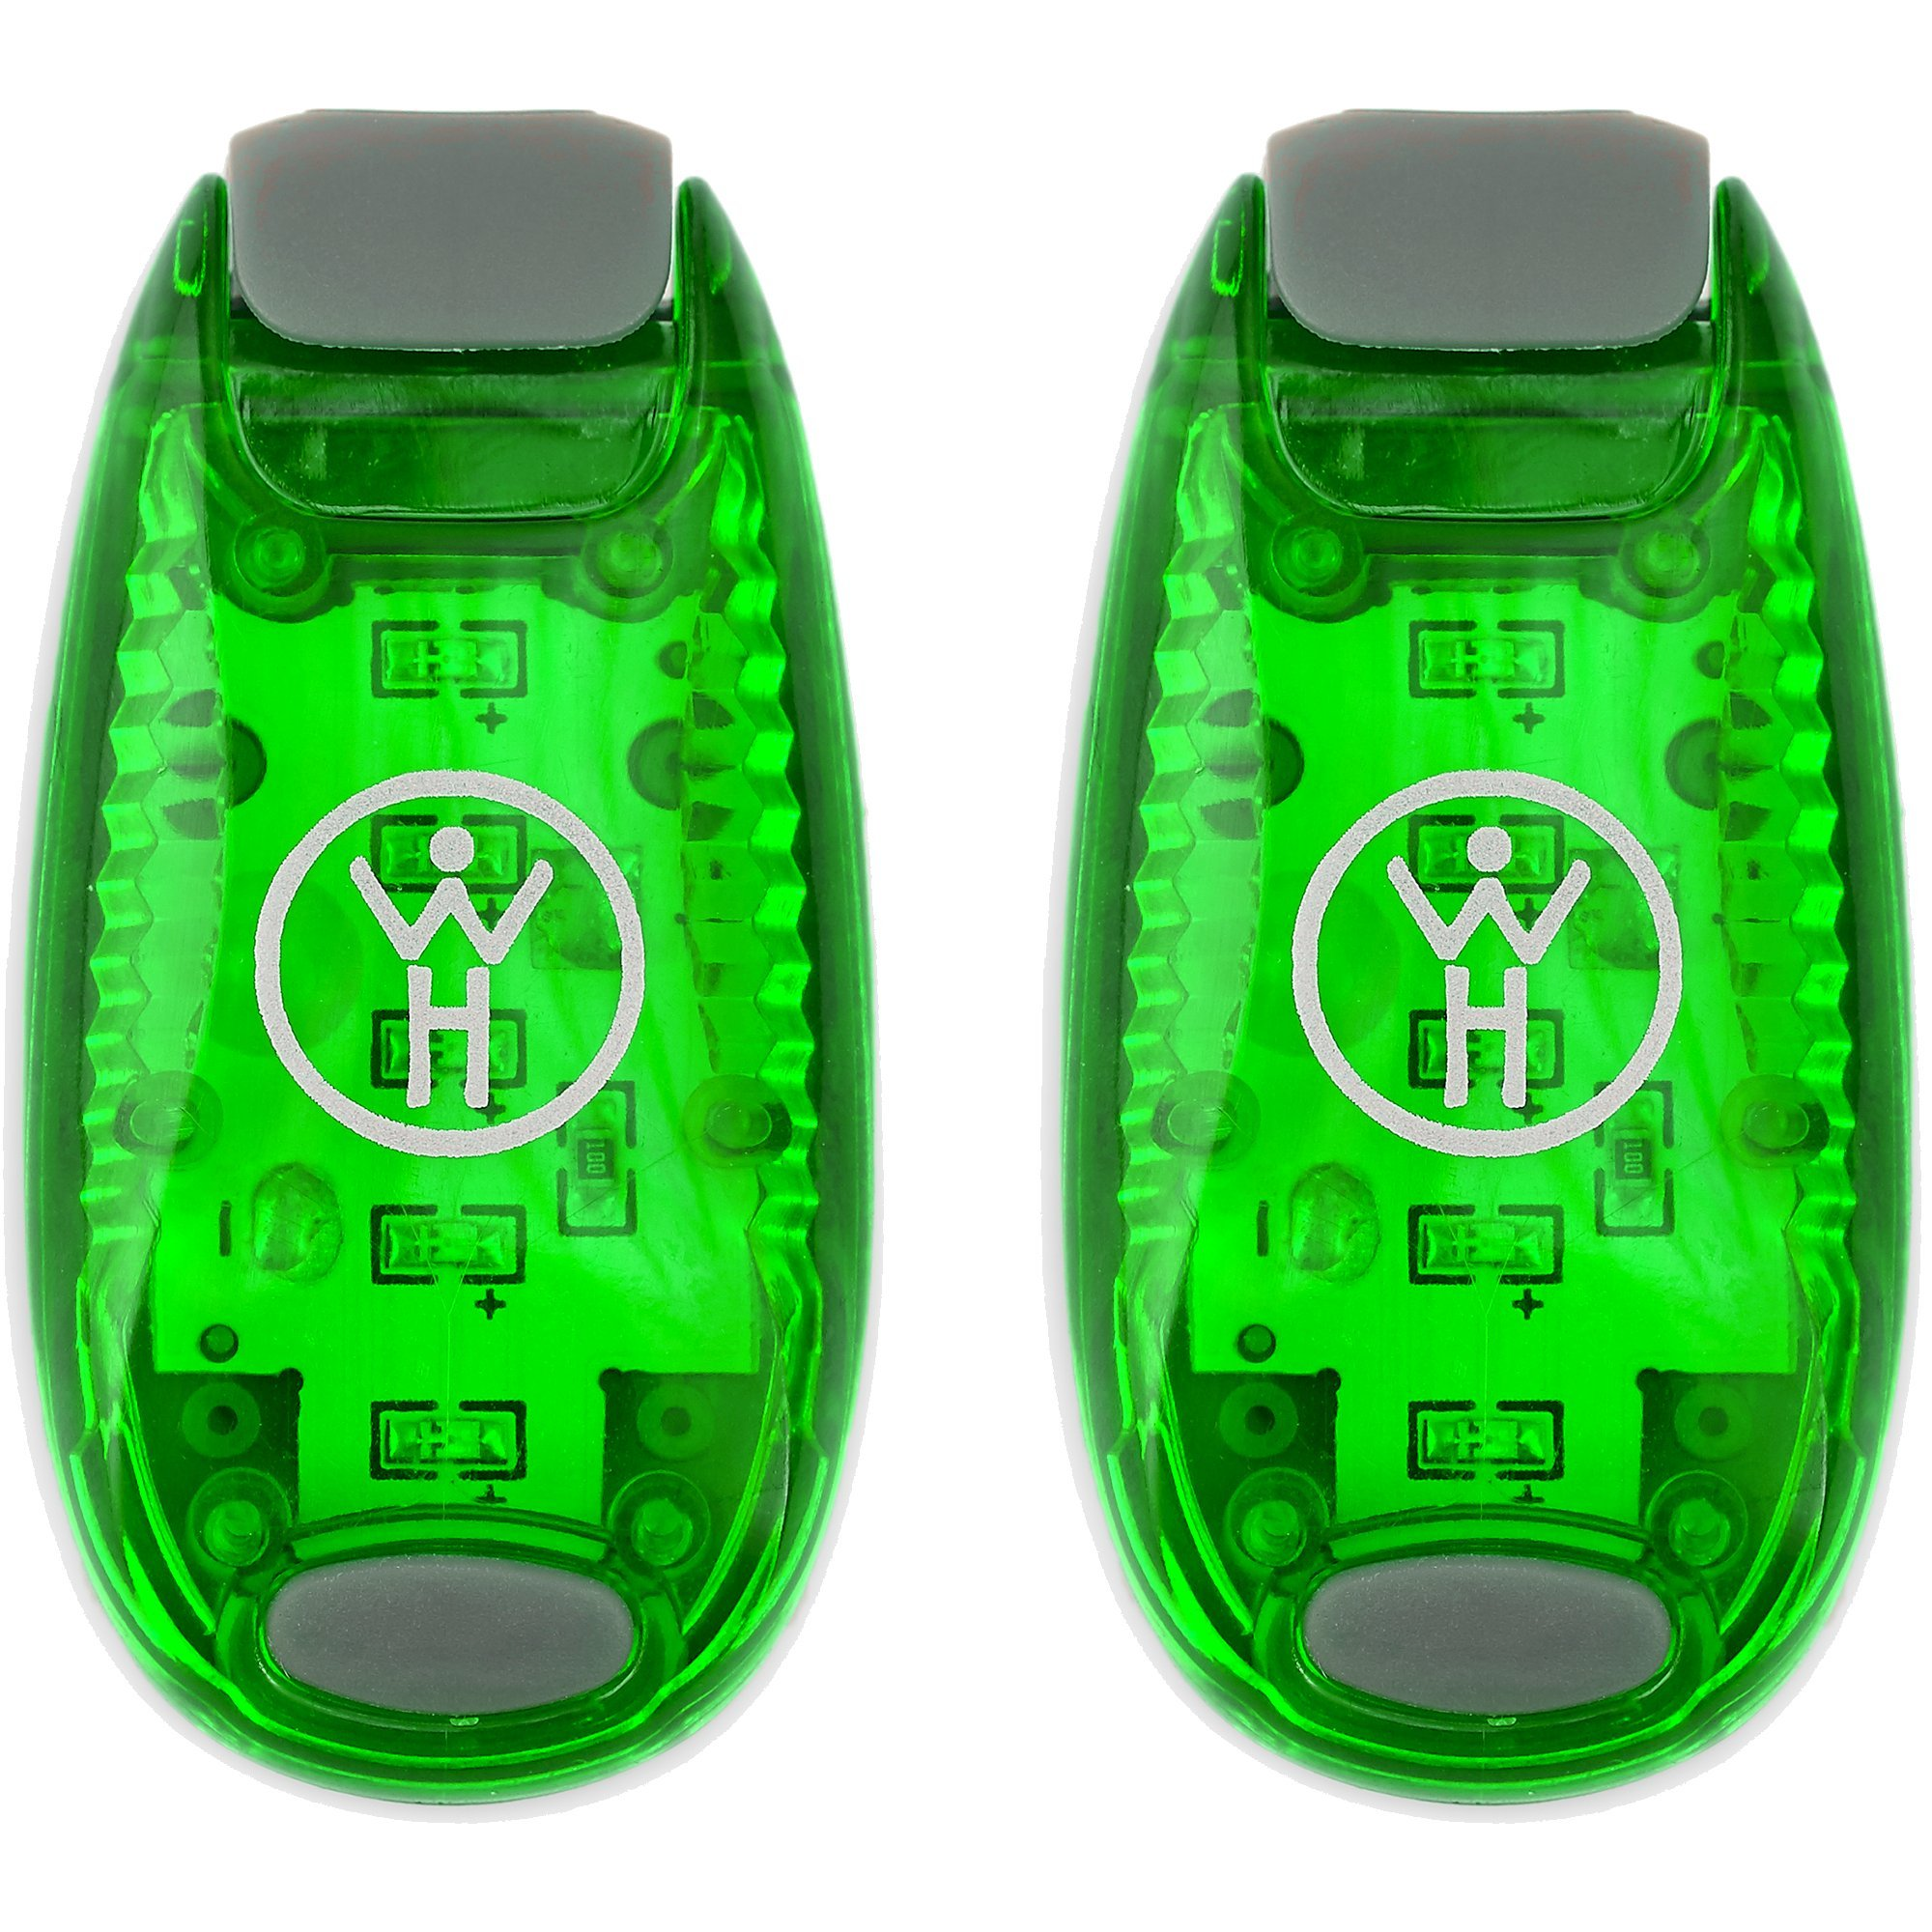 Whole Human LED Safety Lights (2 Pack) - Green by Whole Human